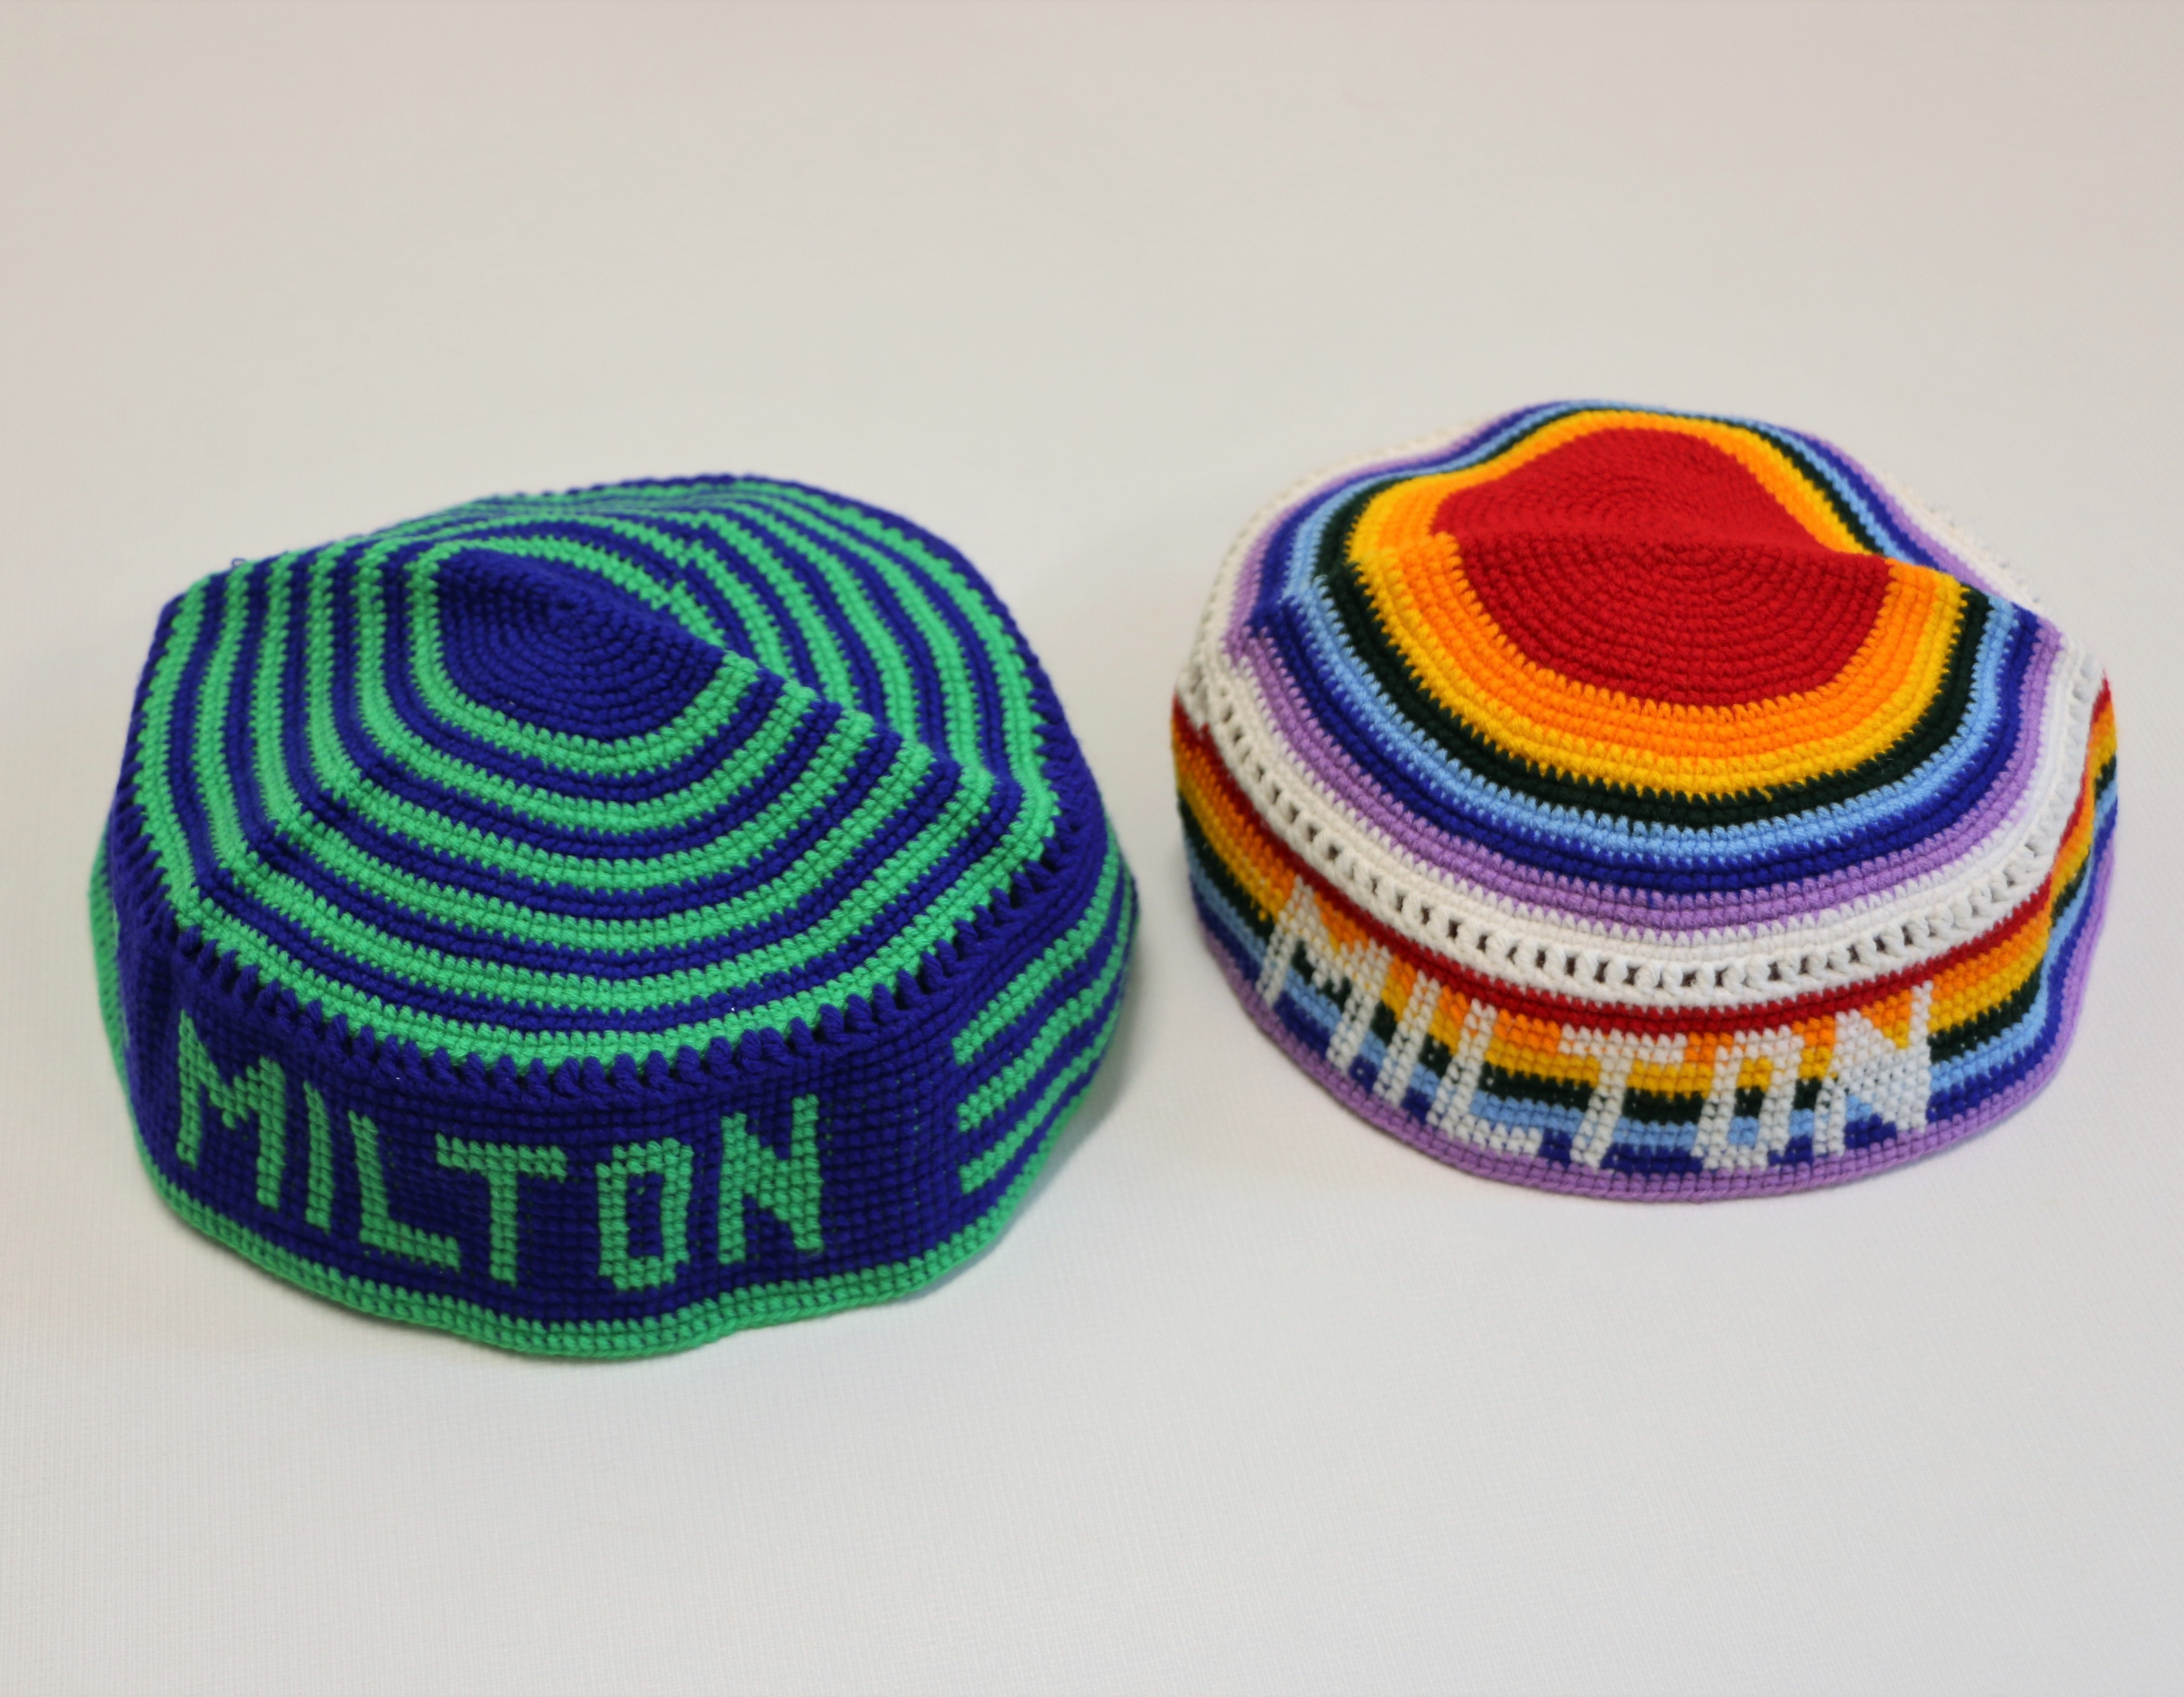 Crocheted kippot that come down the sides of the head. One is blue and green, the other rainbow colored; both have the word